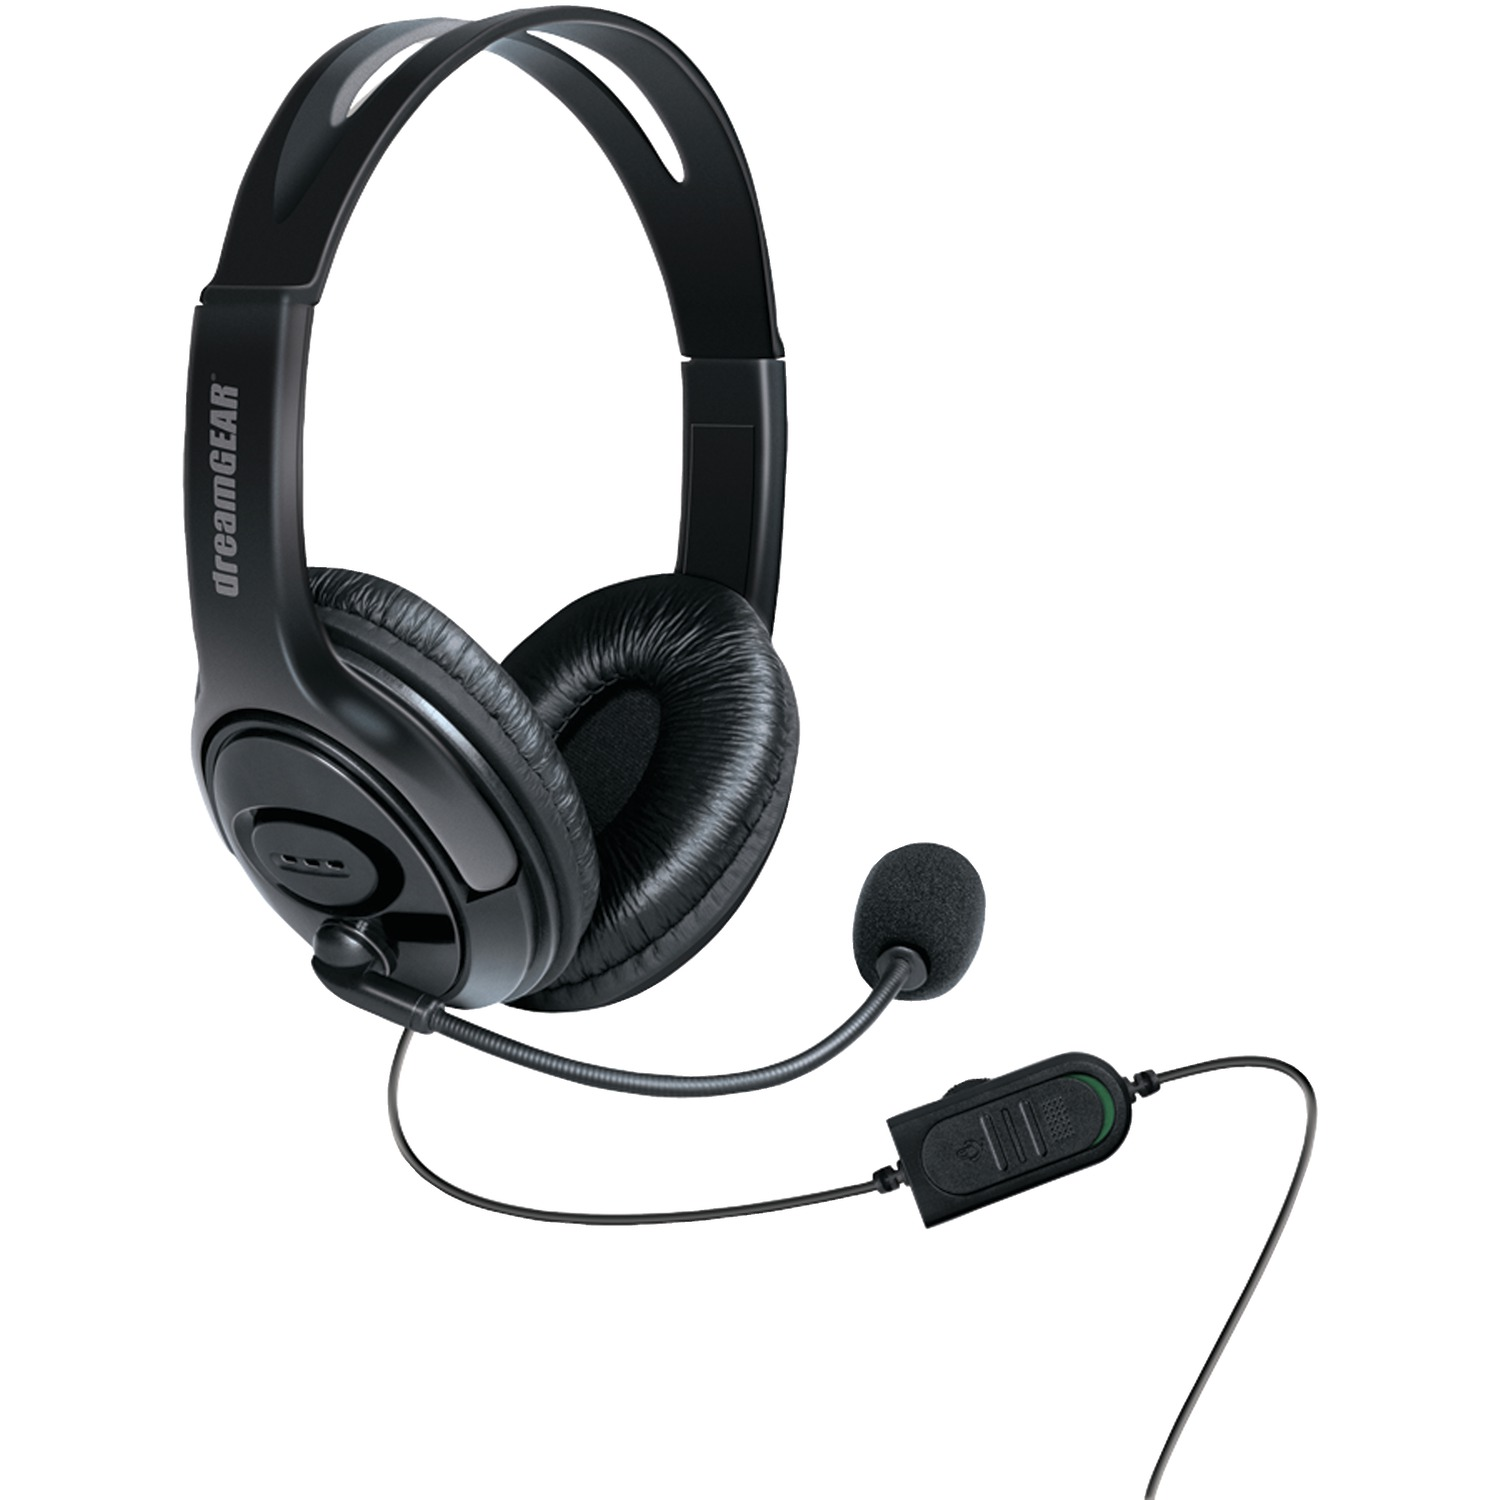 Dreamgear DGXB1-6617 Xbox One Wired Headset With Microphone (Black)